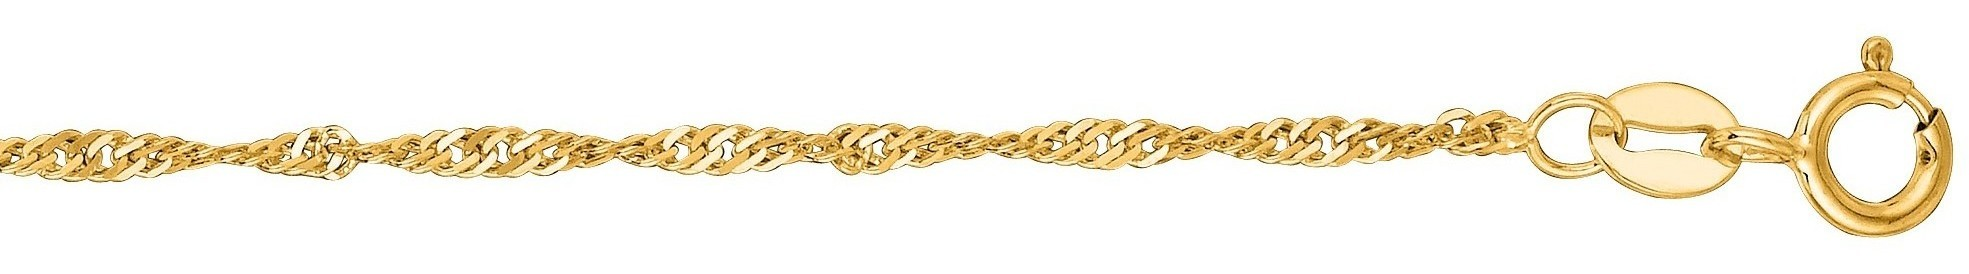 "7"" 10K Yellow Gold 1.5mm (0.06"") Polished Diamond Cut Singapore Chain w/ Spring Ring Clasp"